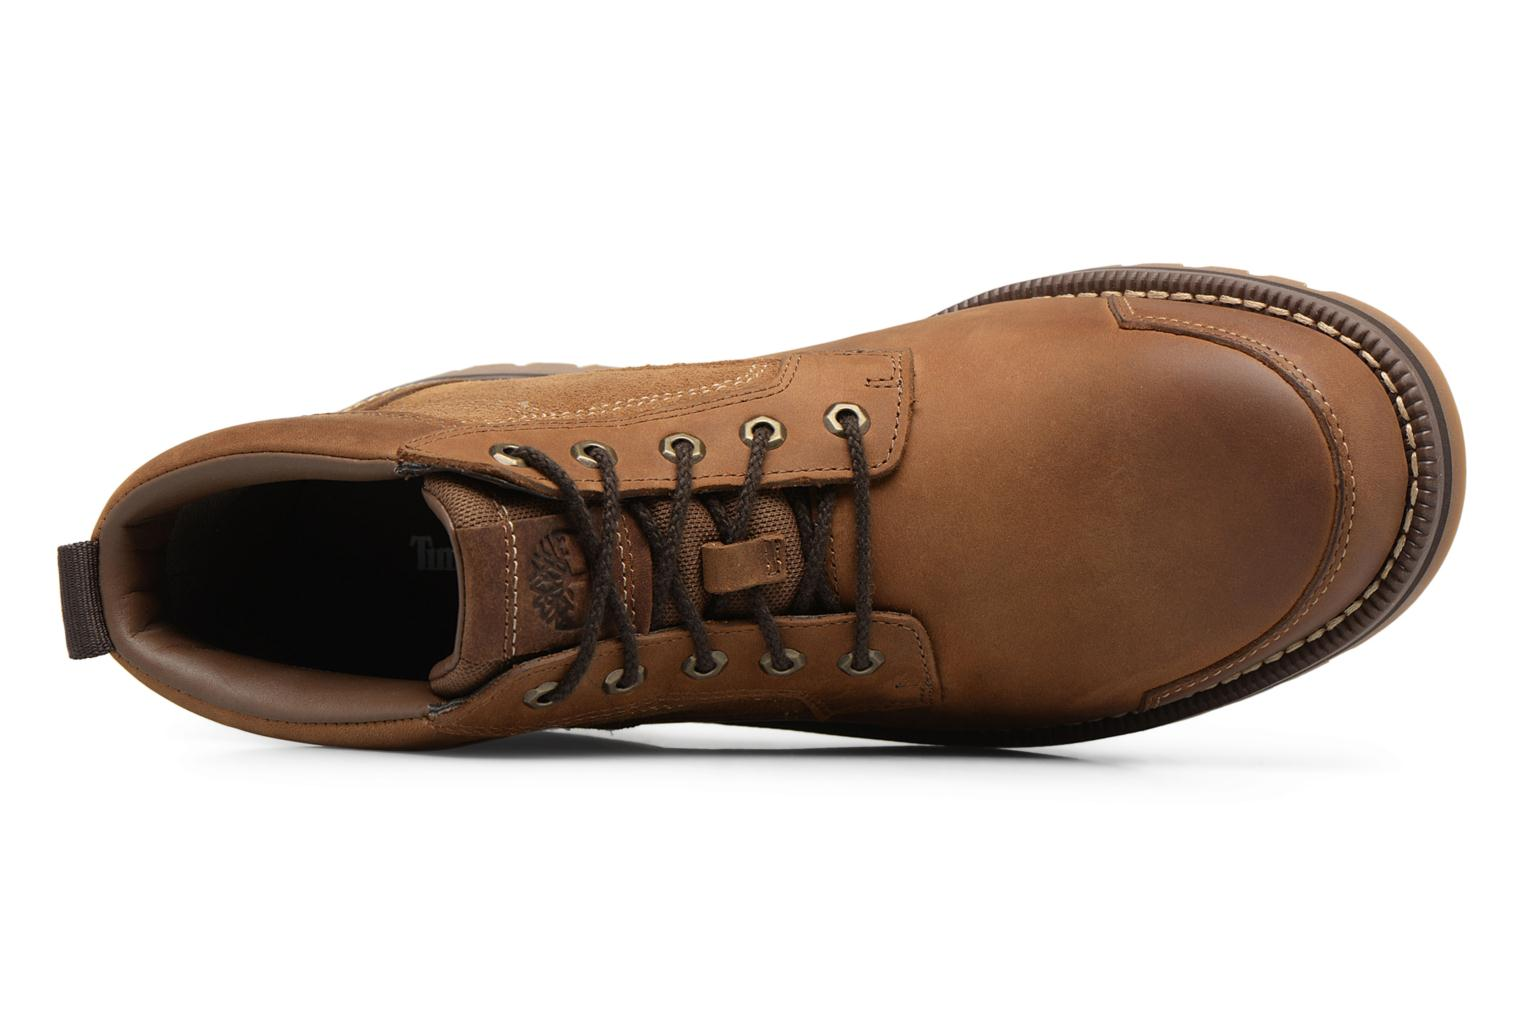 Larchmont Chukka Oakwood FG and Suede